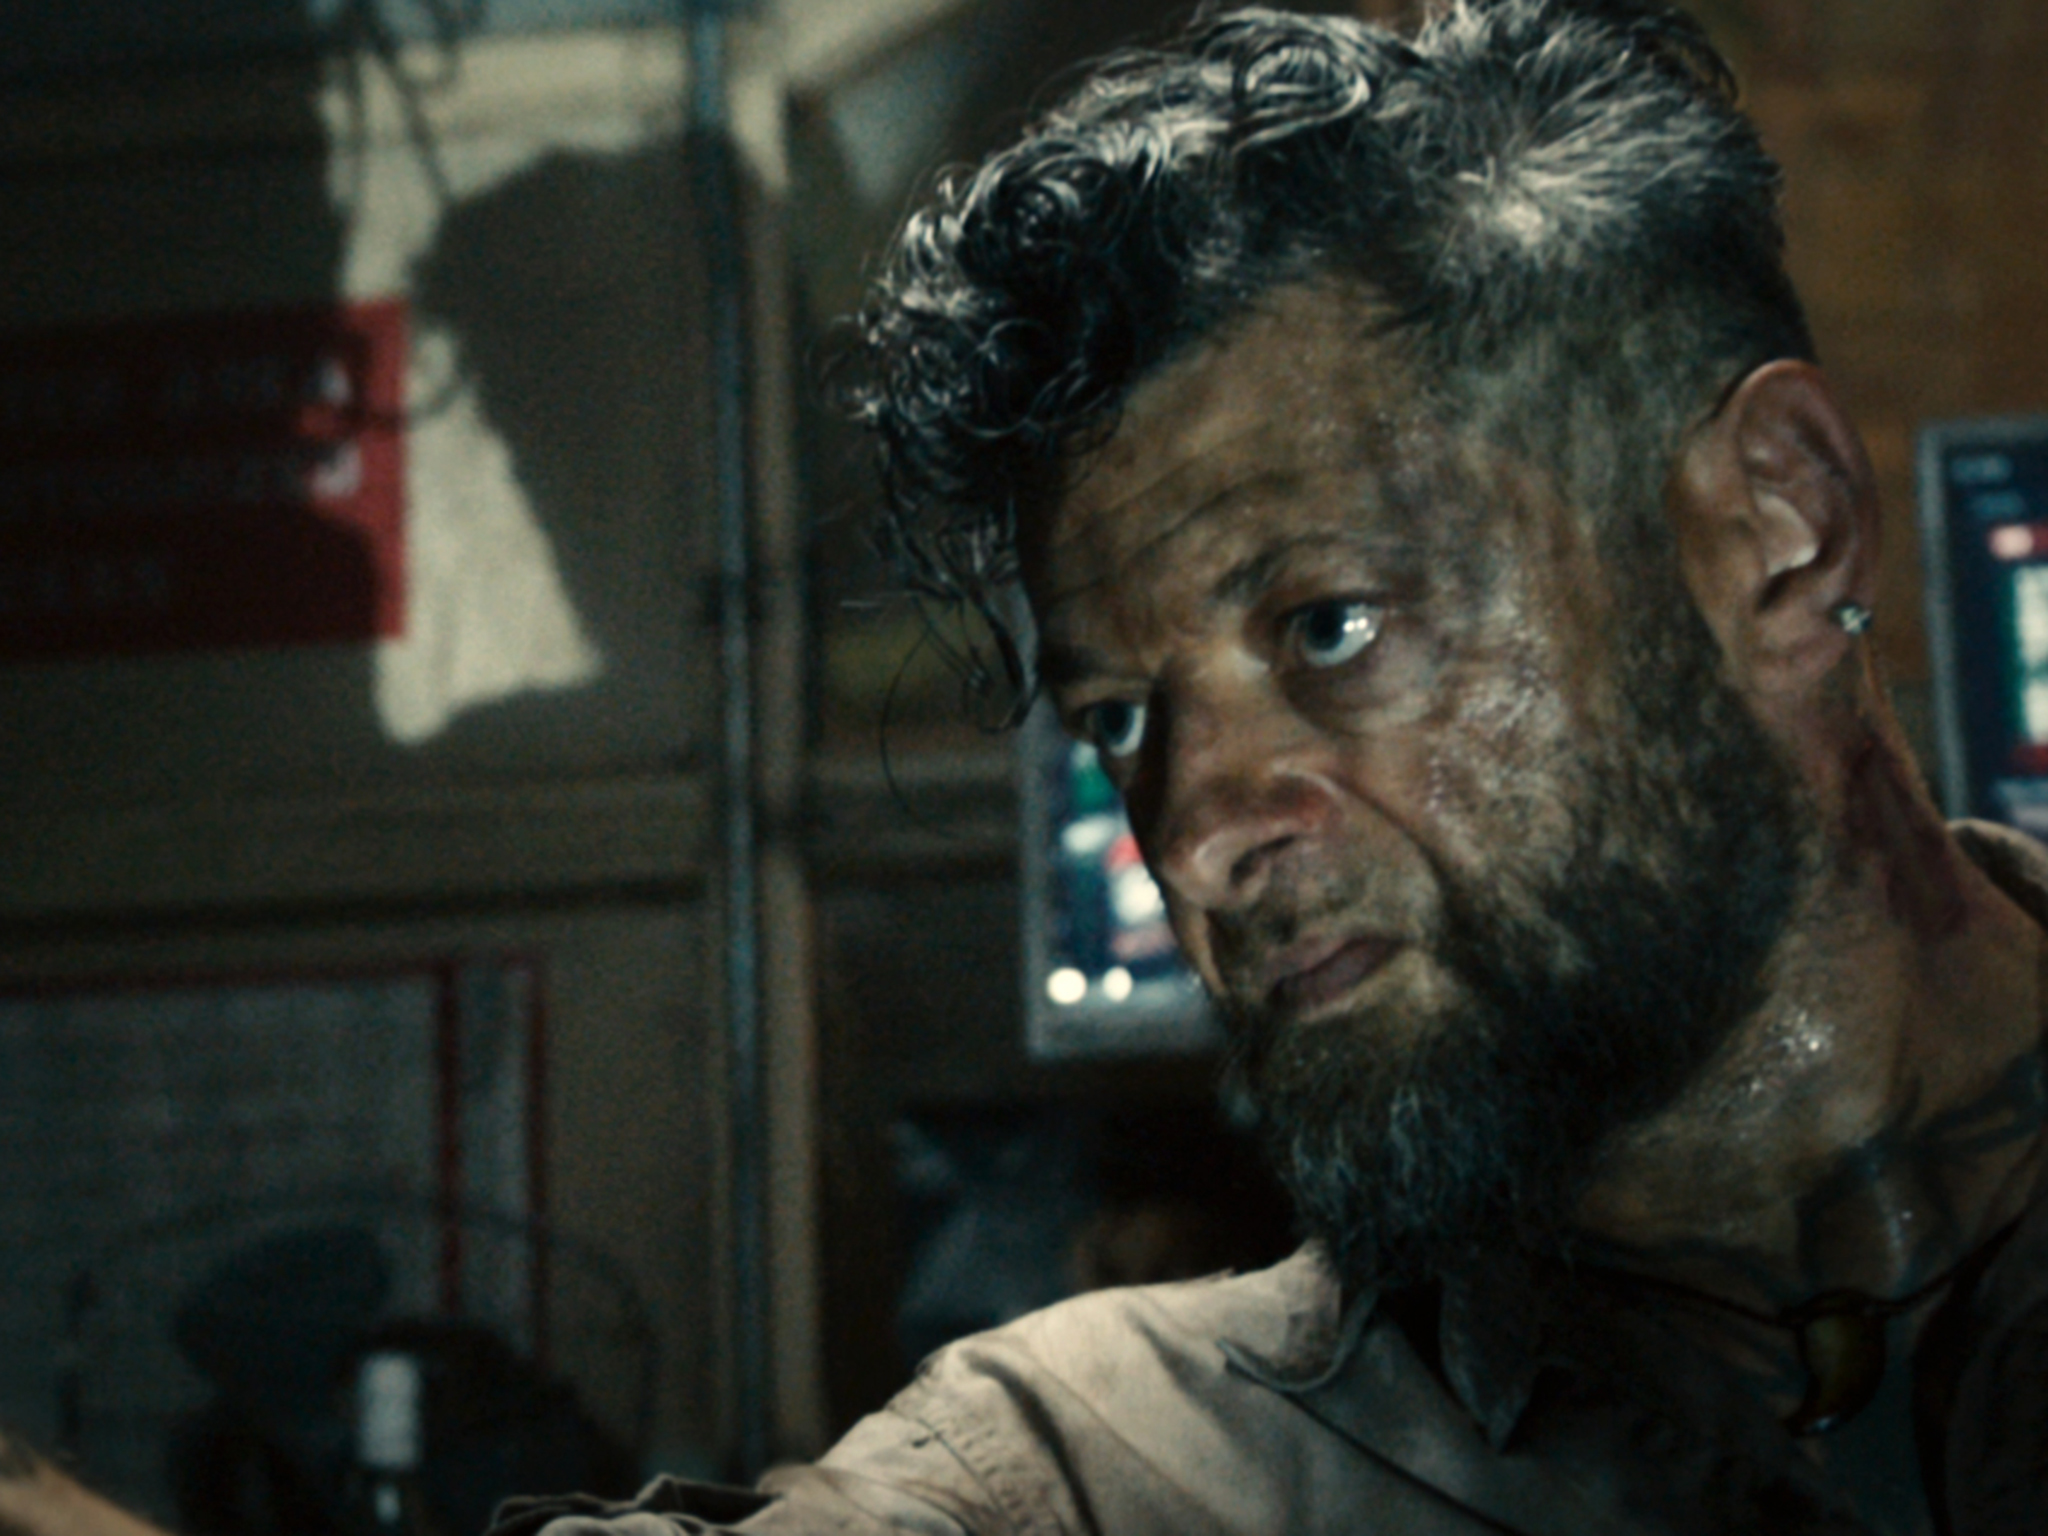 Andy Serkis in 'Avengers: Age of Ultron'